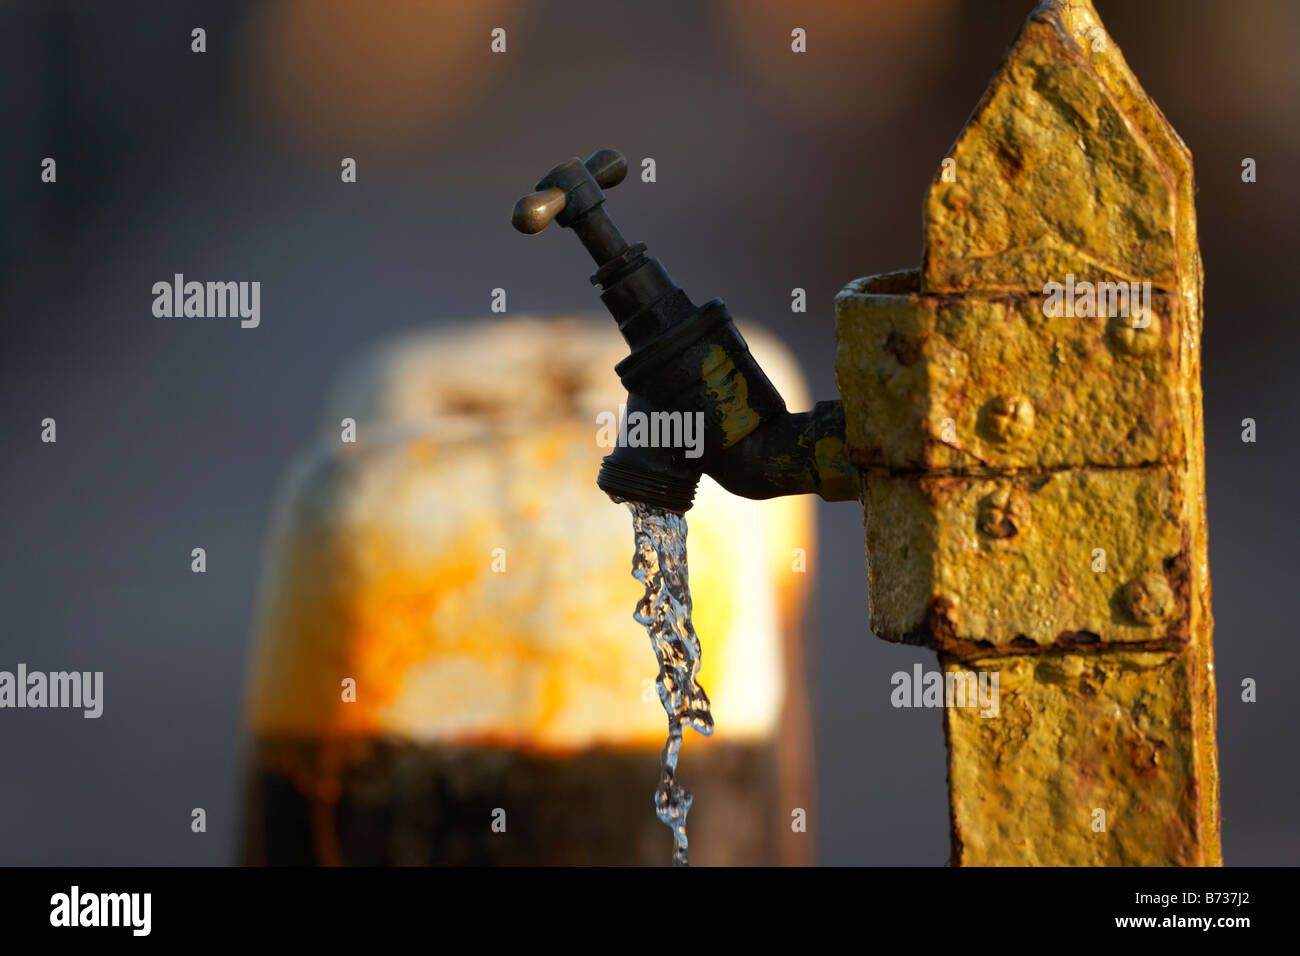 outdoor tap left running with water flowing out freely county down Northern Ireland UK - Stock Image